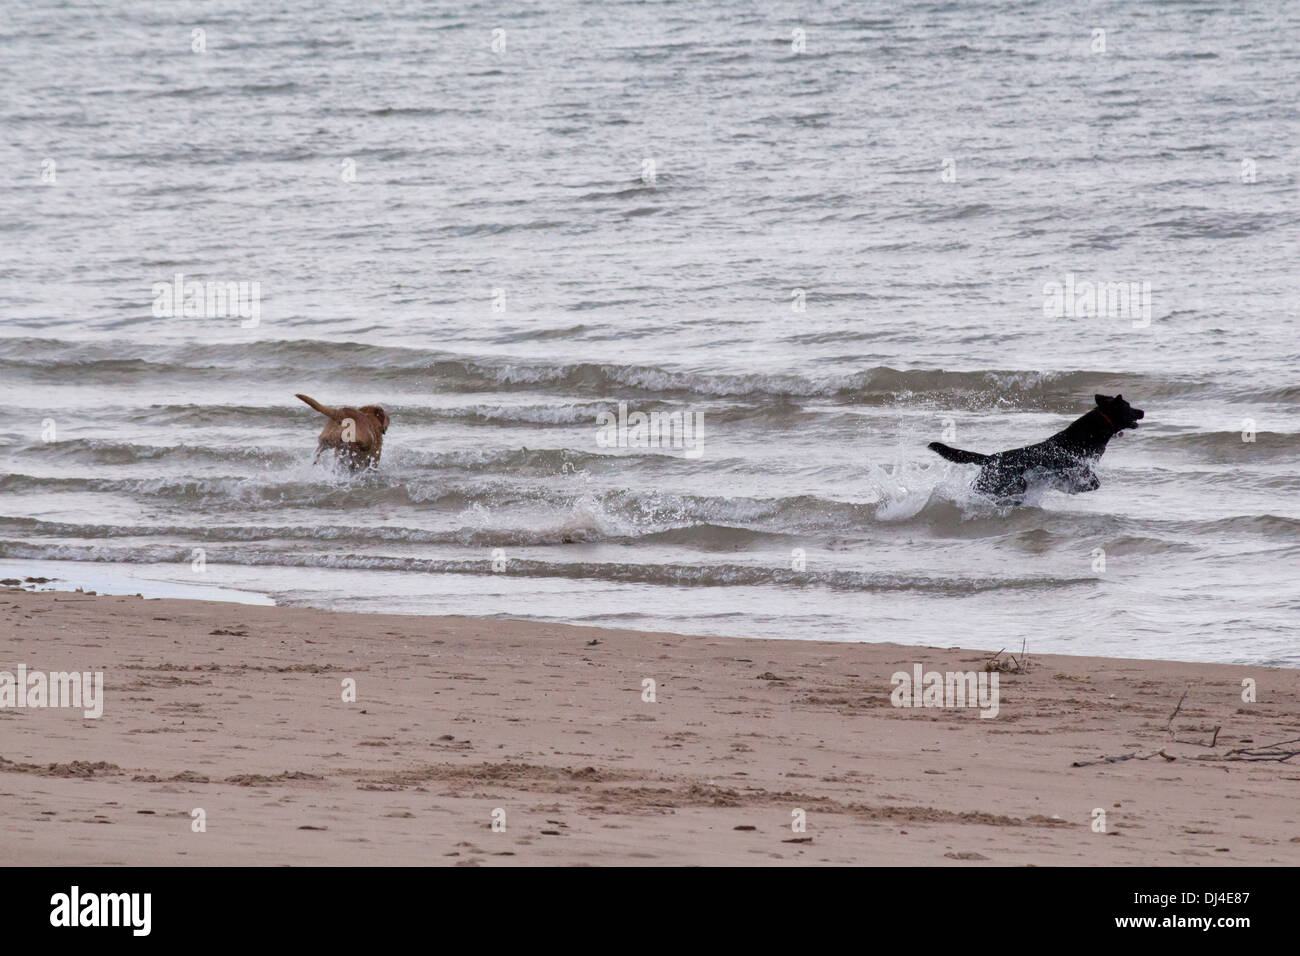 2-dogs-a-black-labrador-and-a-golden-lab